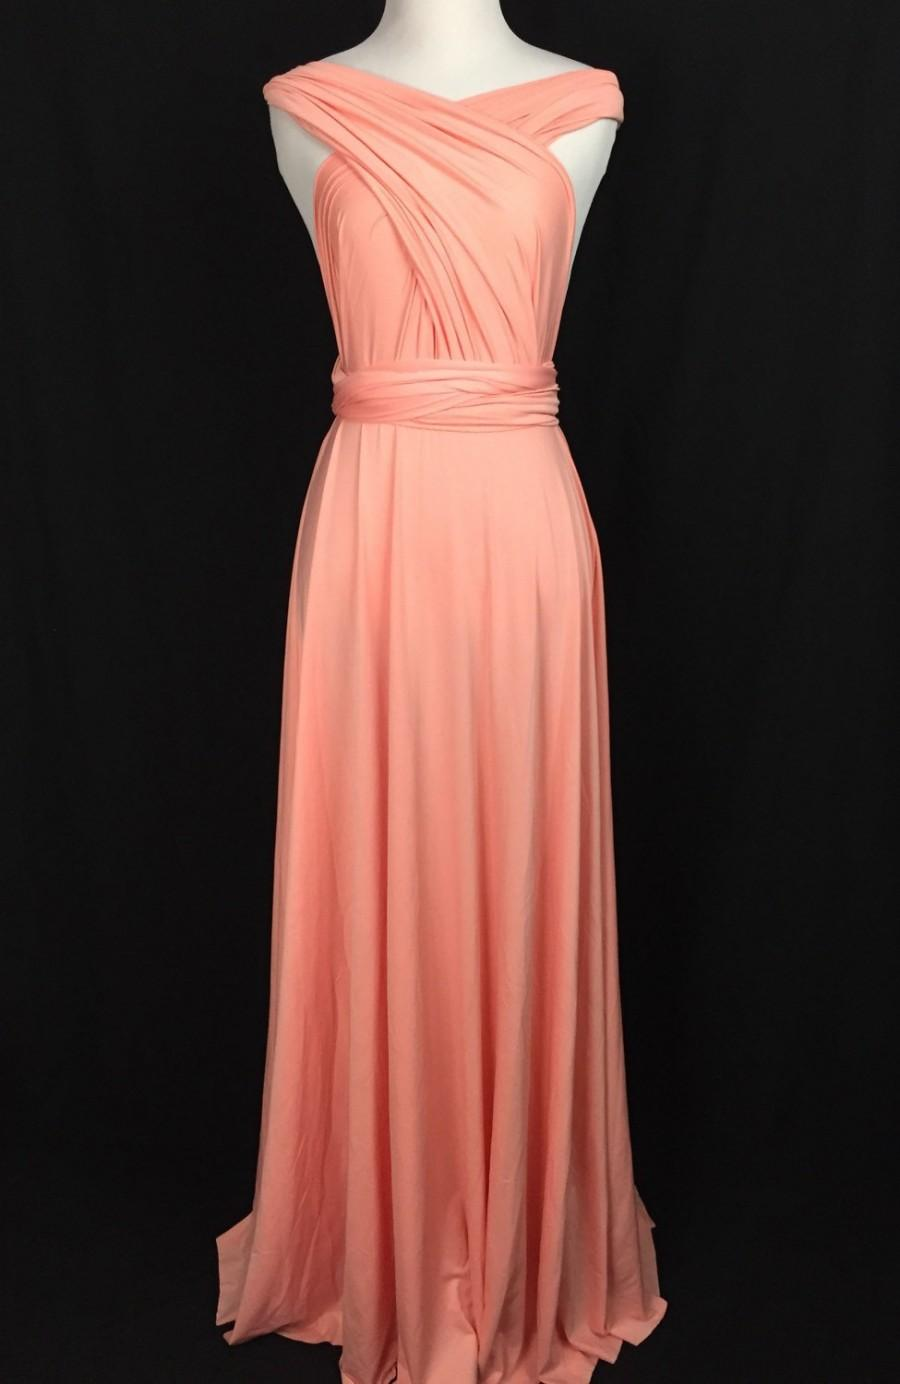 Свадьба - Sweet heart Wrap Convertible Infinity Dress Evening Dresses Straight Hem Floor Length  Peach Bridesmaid Dress-C30#